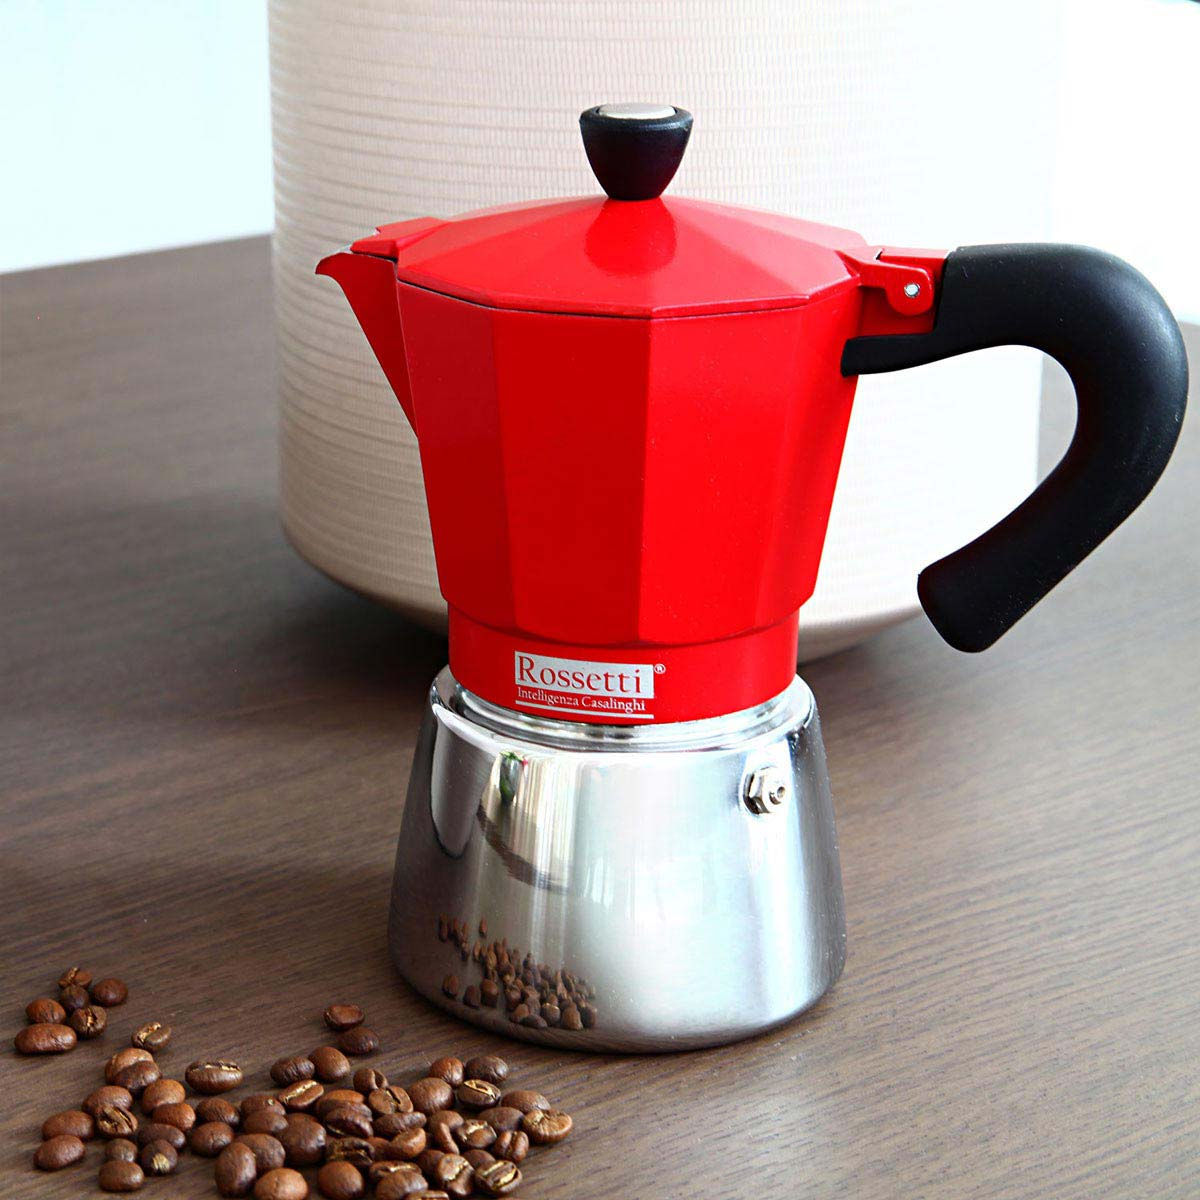 Rossetti Moka Italian 6 Espresso Cup Red Induction Moka Coffee Espresso Maker Pot